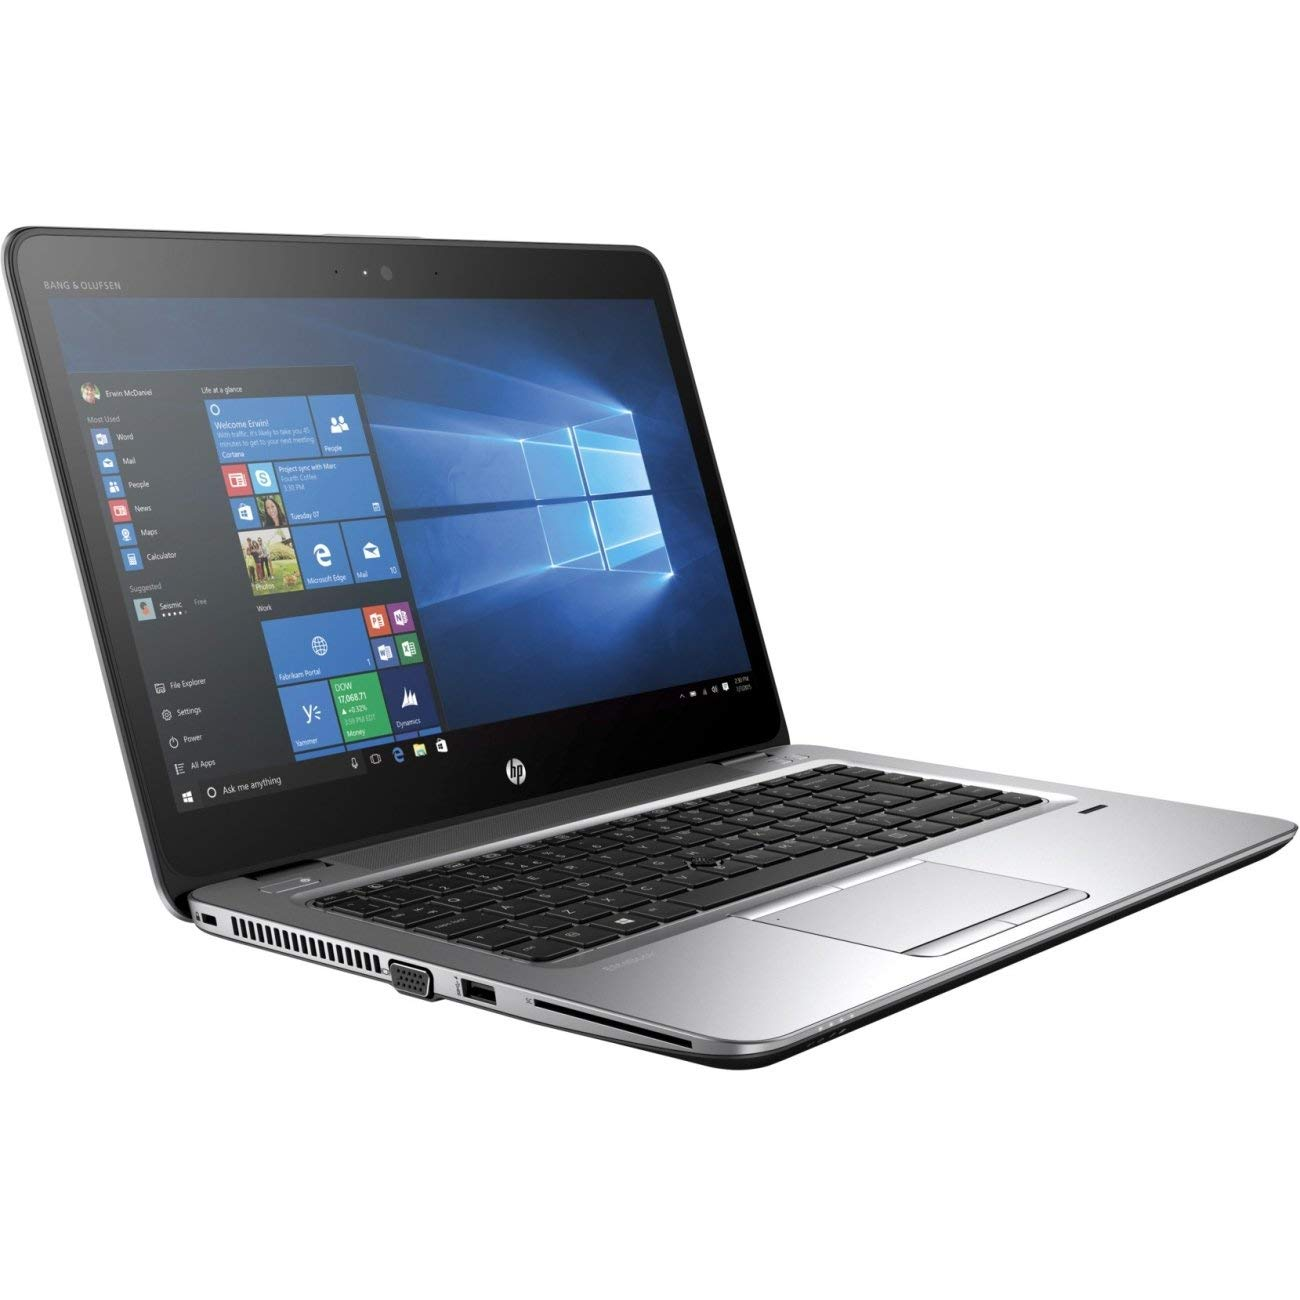 "HP EliteBook 745 G3 14"" Notebook Laptop AMD A10-8700B 1.8GHz 8GB 256GB SSD Windows 10 Professional (Certified Refurbished)"